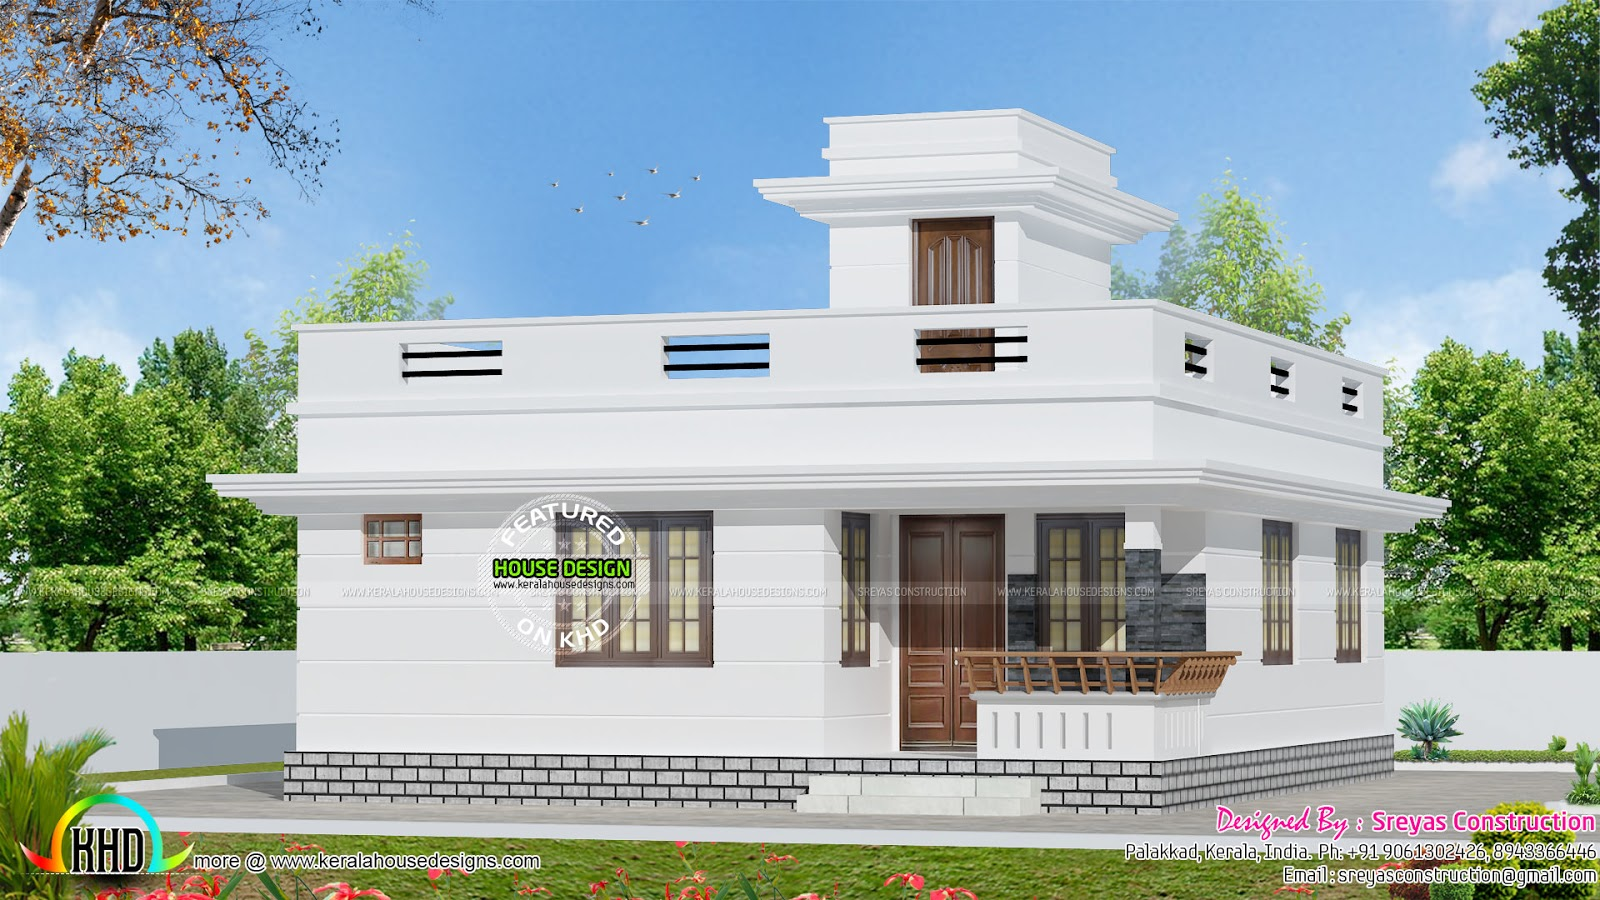 882 sq ft small house architecture kerala home design Latest simple house design